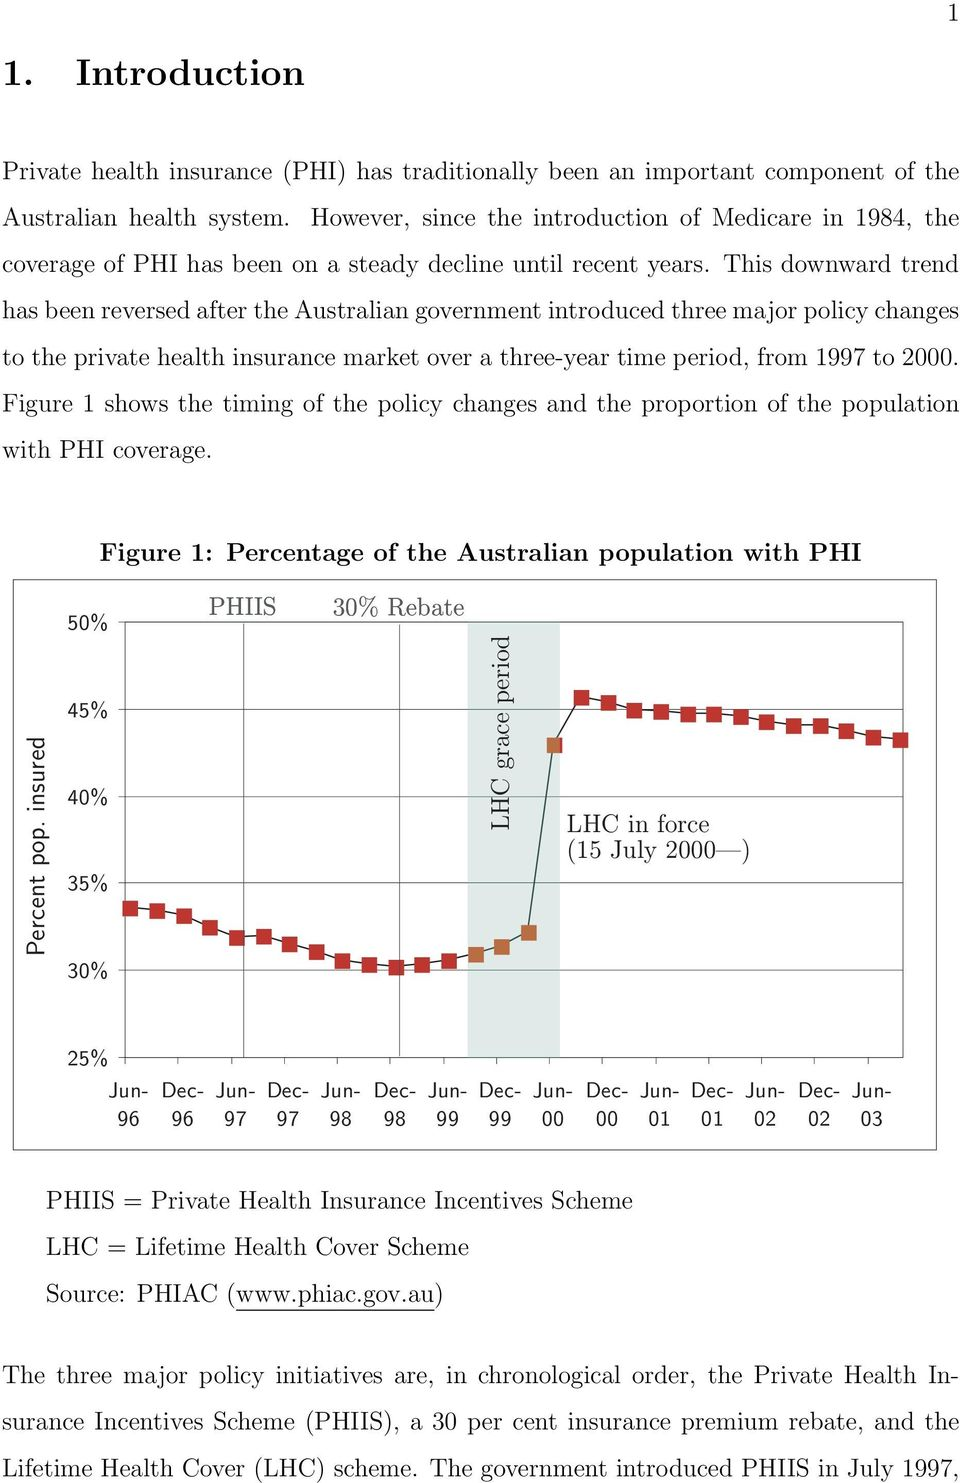 This downward trend has been reversed after the Australian government introduced three major policy changes to the private health insurance market over a three-year time period, from 1997 to 2000.